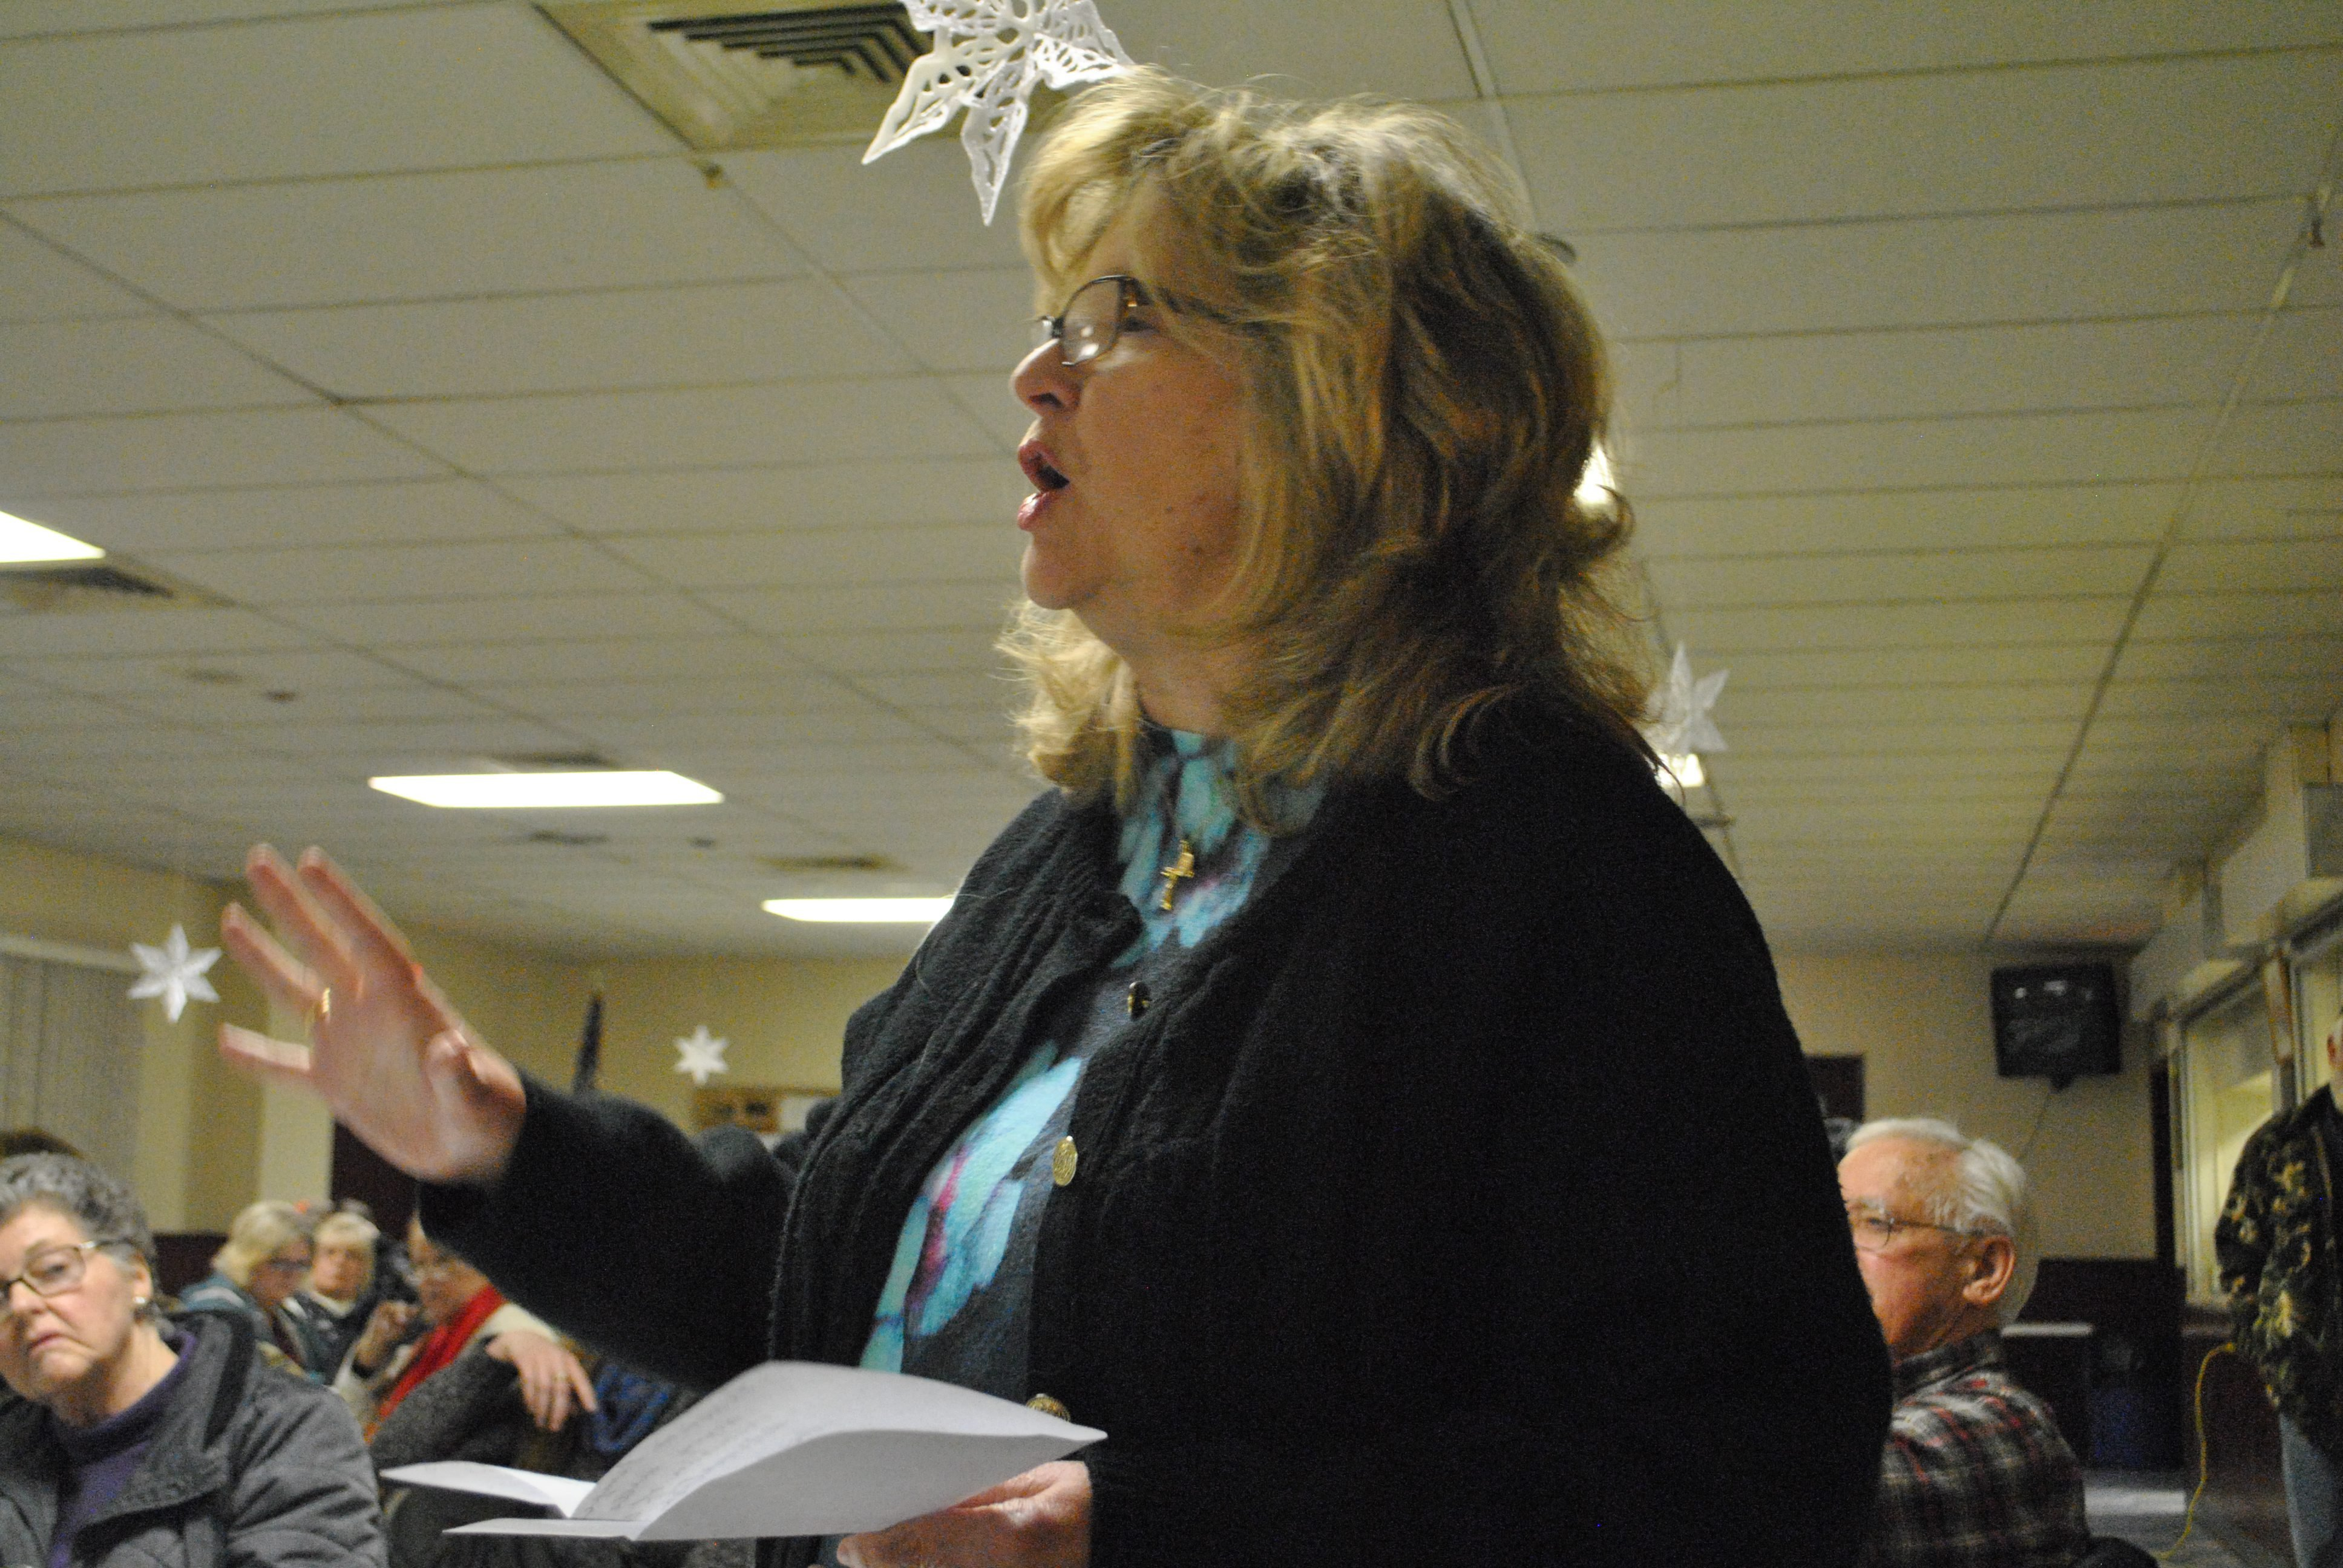 Dr. Annette V·zquez of Eldred Township adresses a question to a Delaware River Basin Commission representative during a Q&A Jan. 20 about the Nestlé plan to extract water for its Deer Park bottled water brand. (Pocono Record file photo)